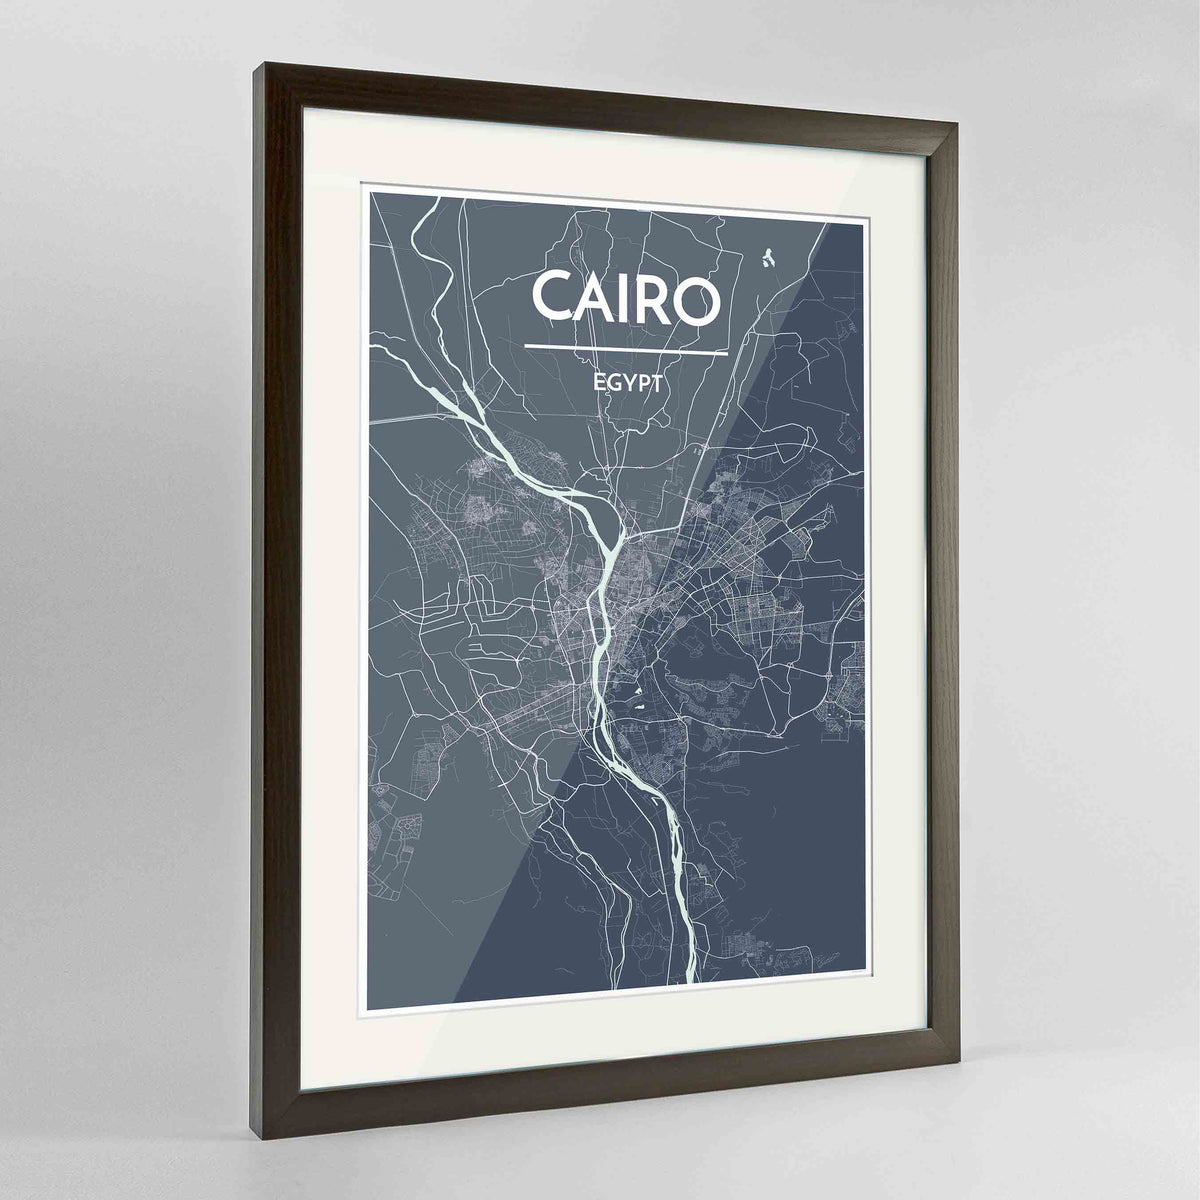 "Framed Cairo Map Art Print 24x36"" Contemporary Walnut frame Point Two Design Group"